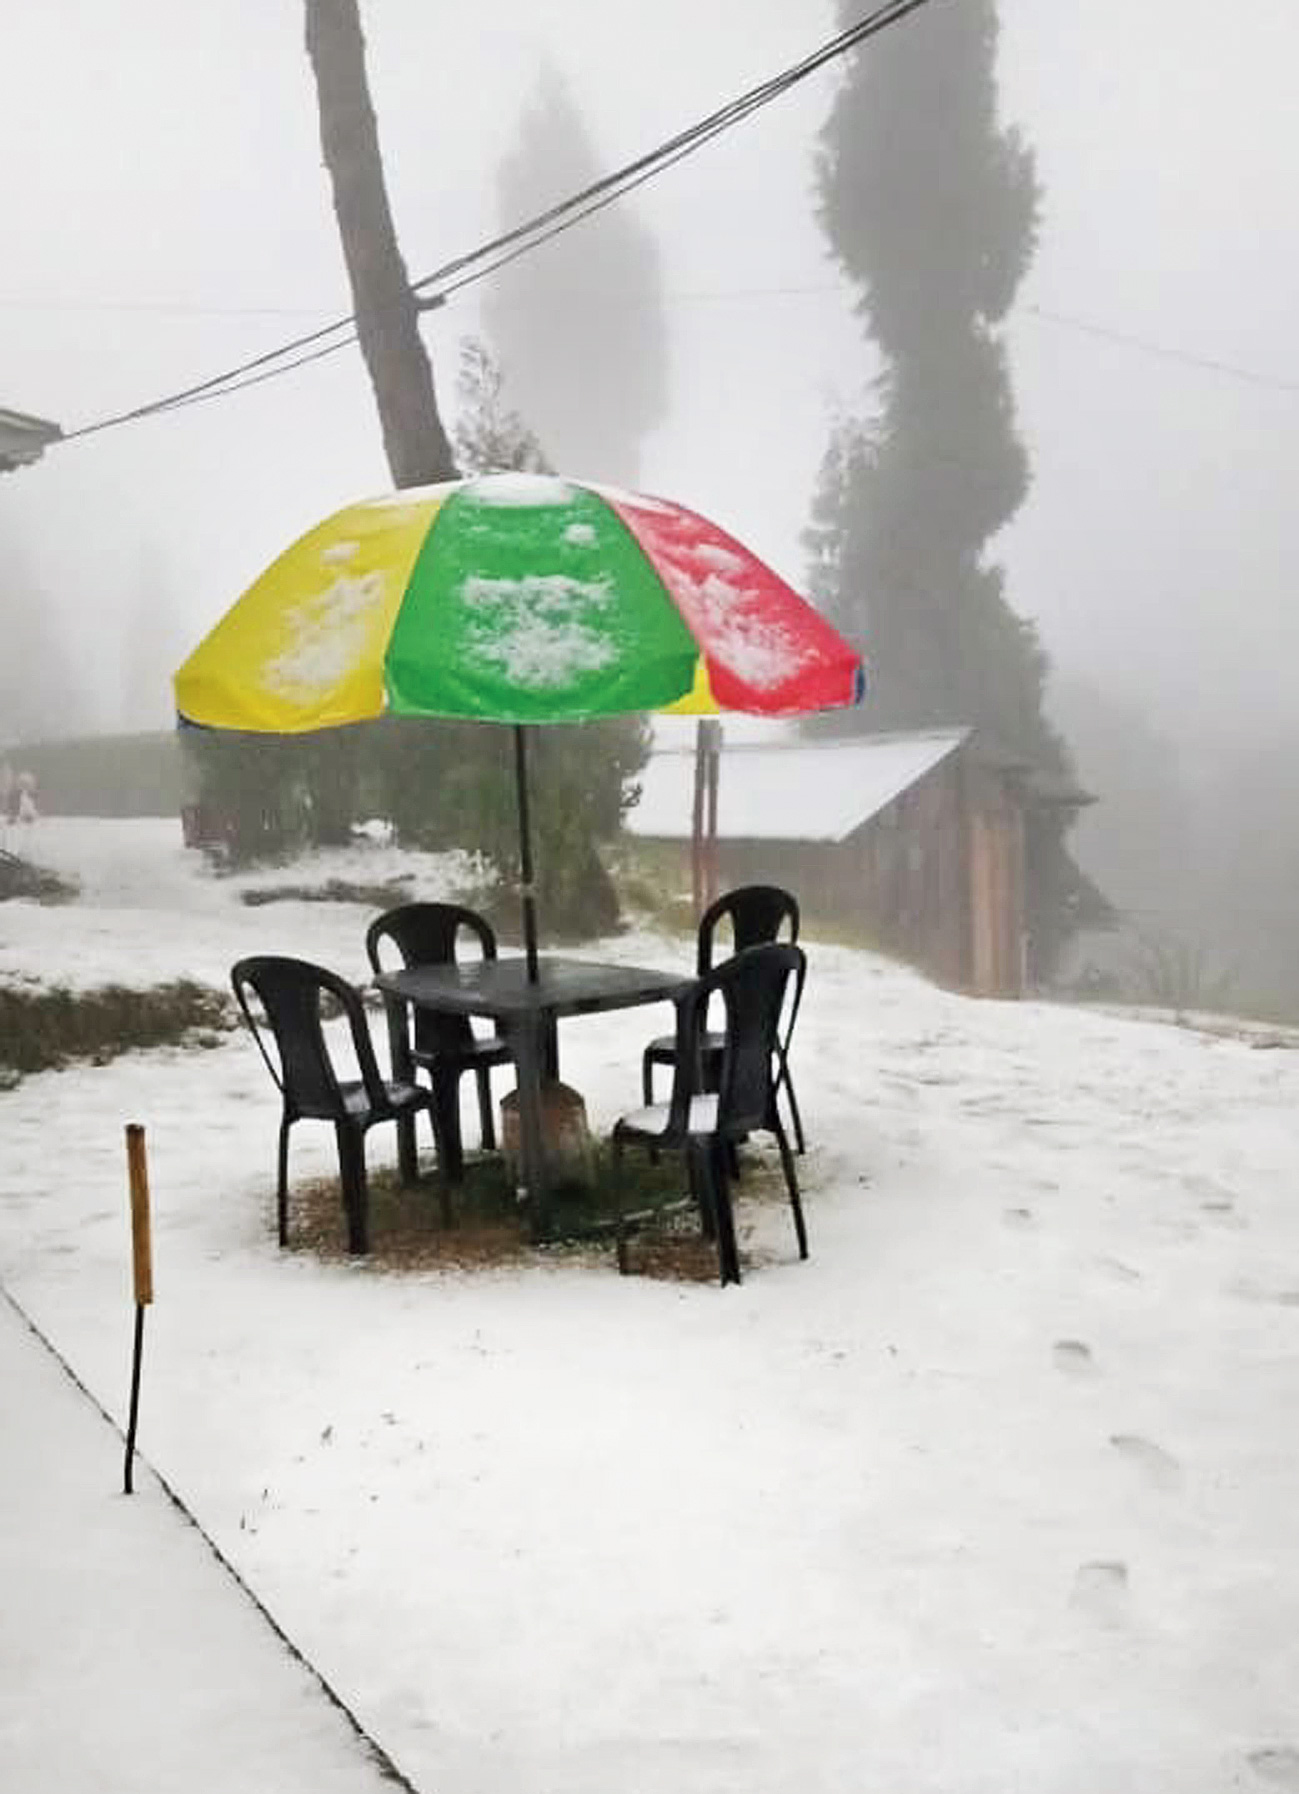 Rishyap in Kalimpong district after the snowfall on Friday morning.